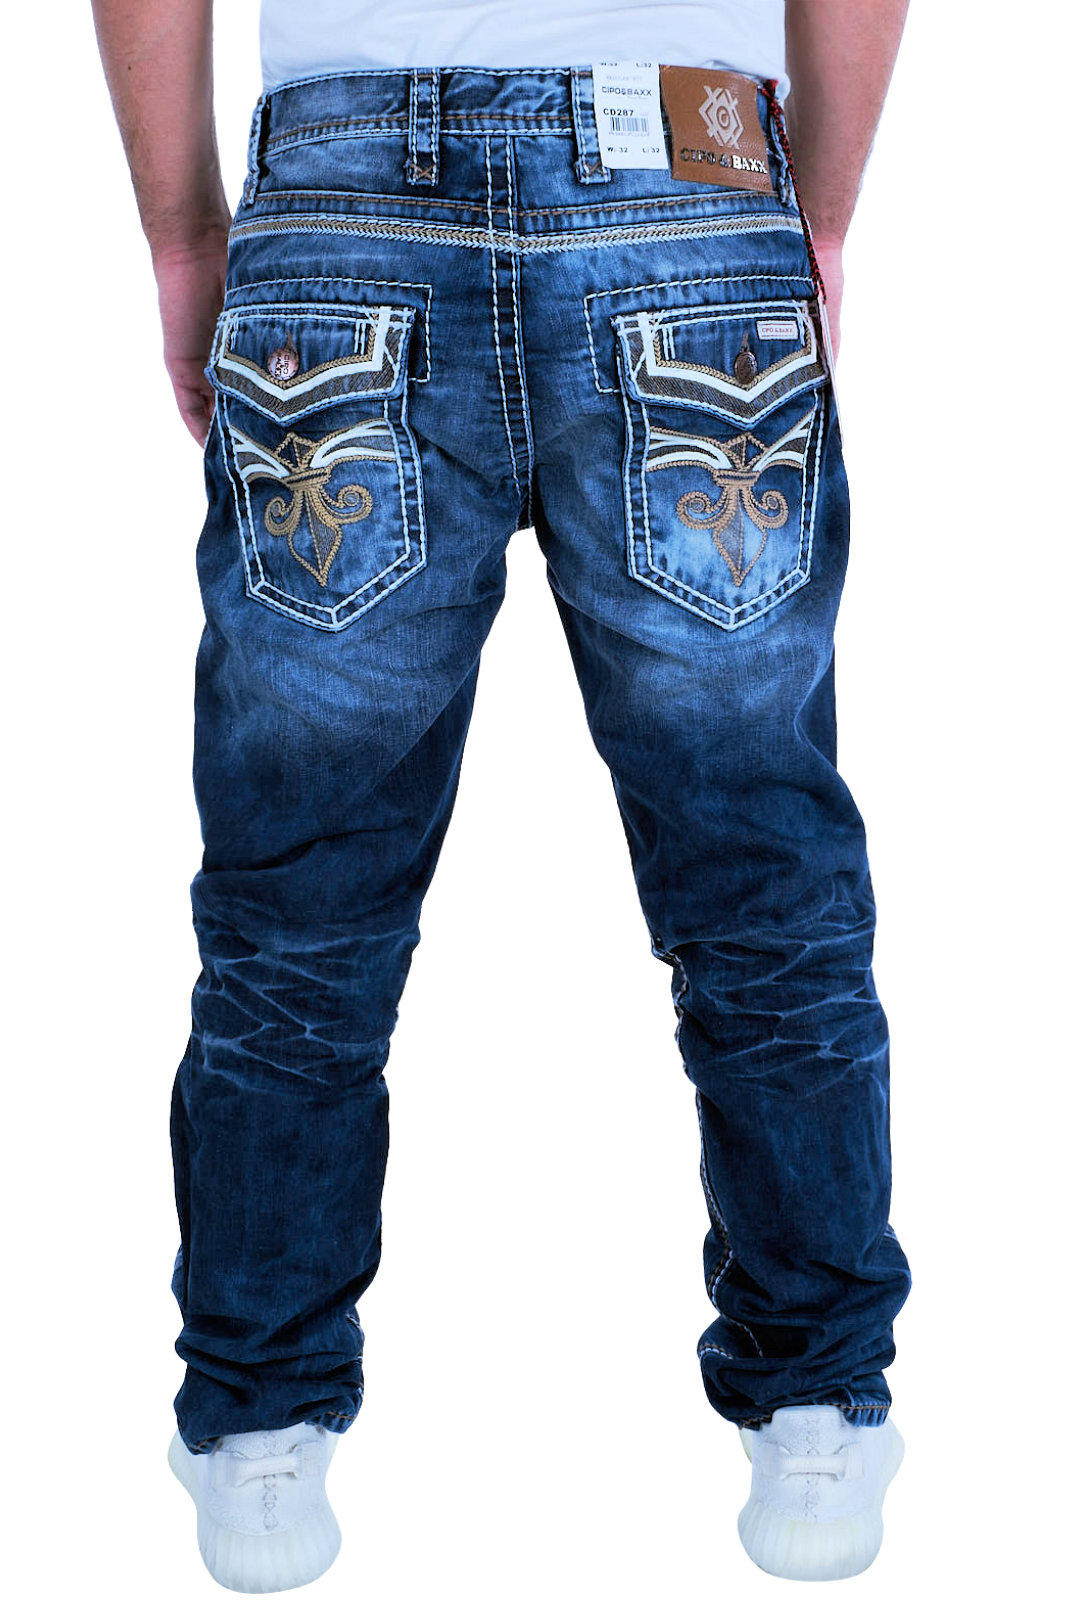 Cipo-amp-Baxx-Mens-Jeans-Clubwear-Denim-Trousers-cd287-Straight-Vintage-Thick-Seams thumbnail 3